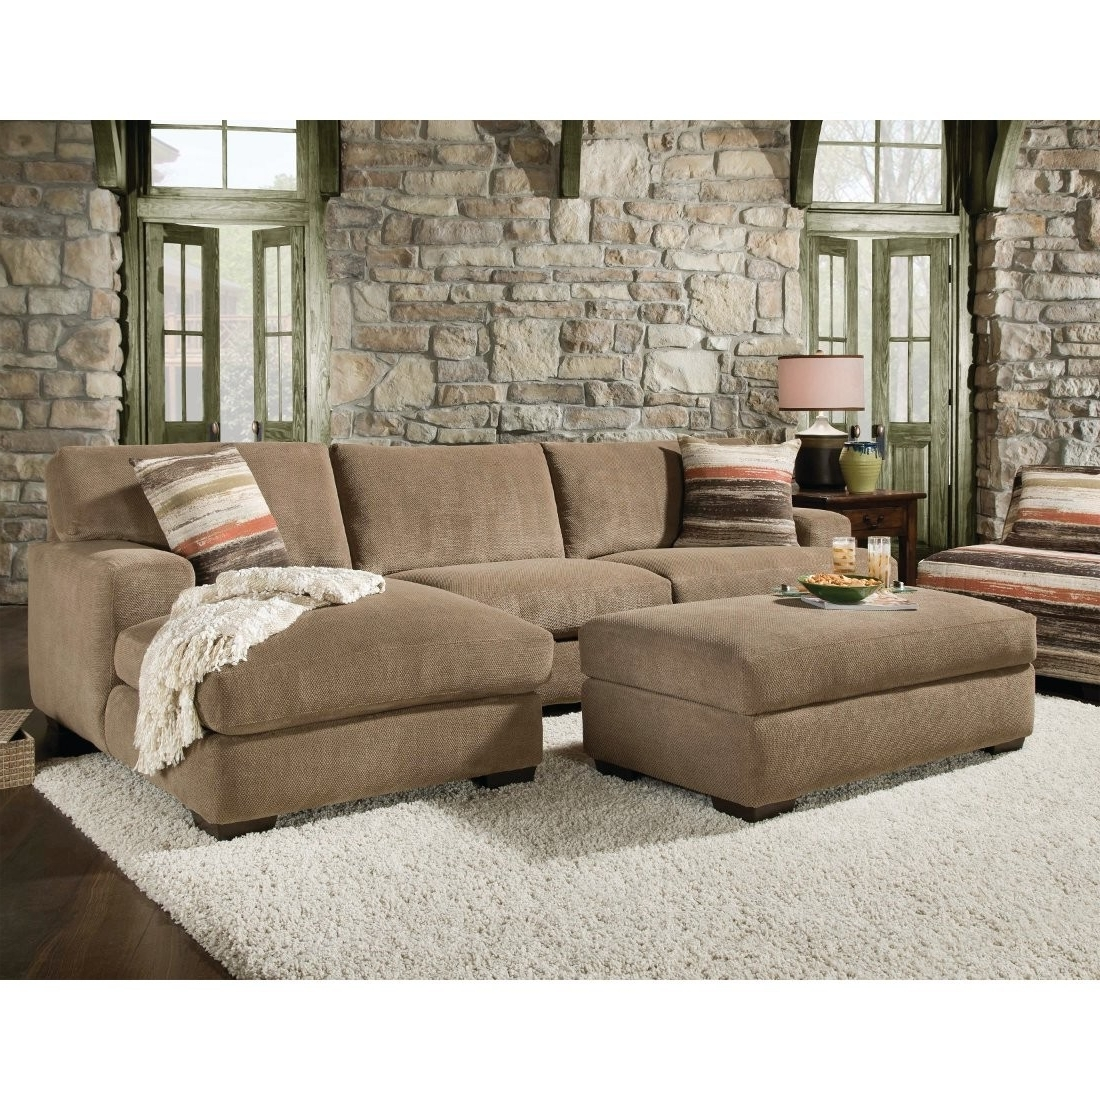 Best And Newest Leather Sectional Sleeper Sofa Sectional Sofas With Recliners And Inside Small Sectional Sofas With Chaise Lounge (View 4 of 15)